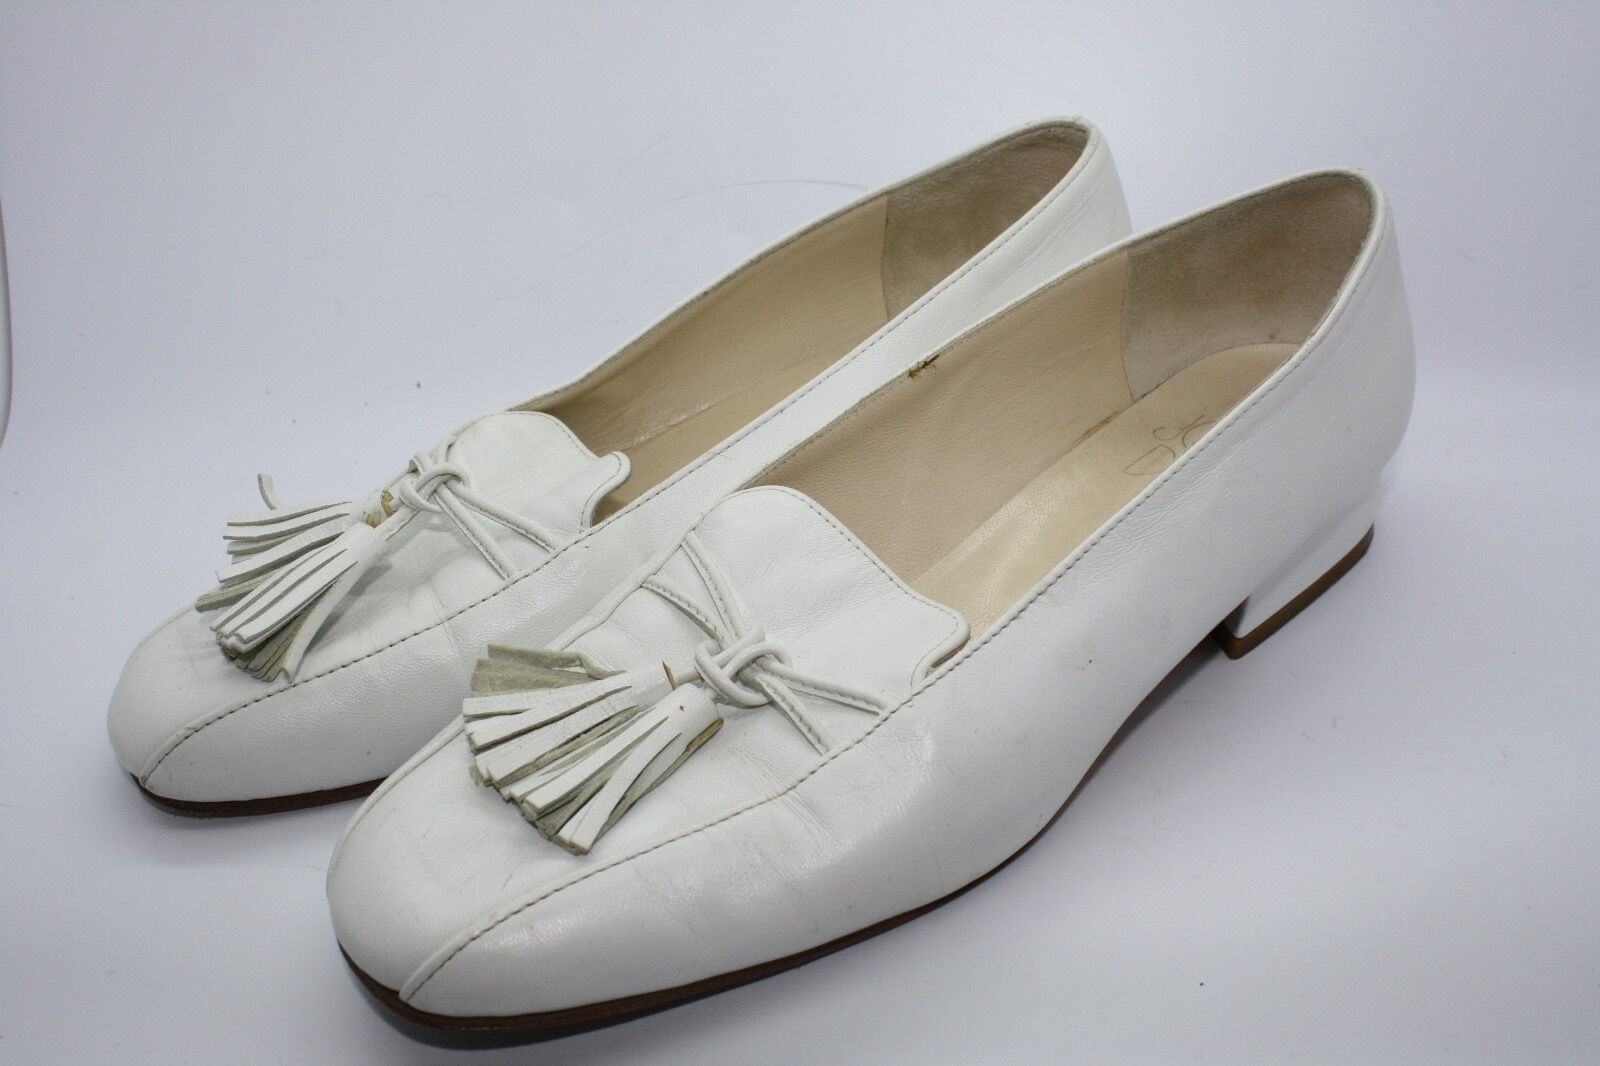 JOAN & DAVID Vtg WEISS Leder Flat Loafers Classic Fringed Tassel Sz 7.5M